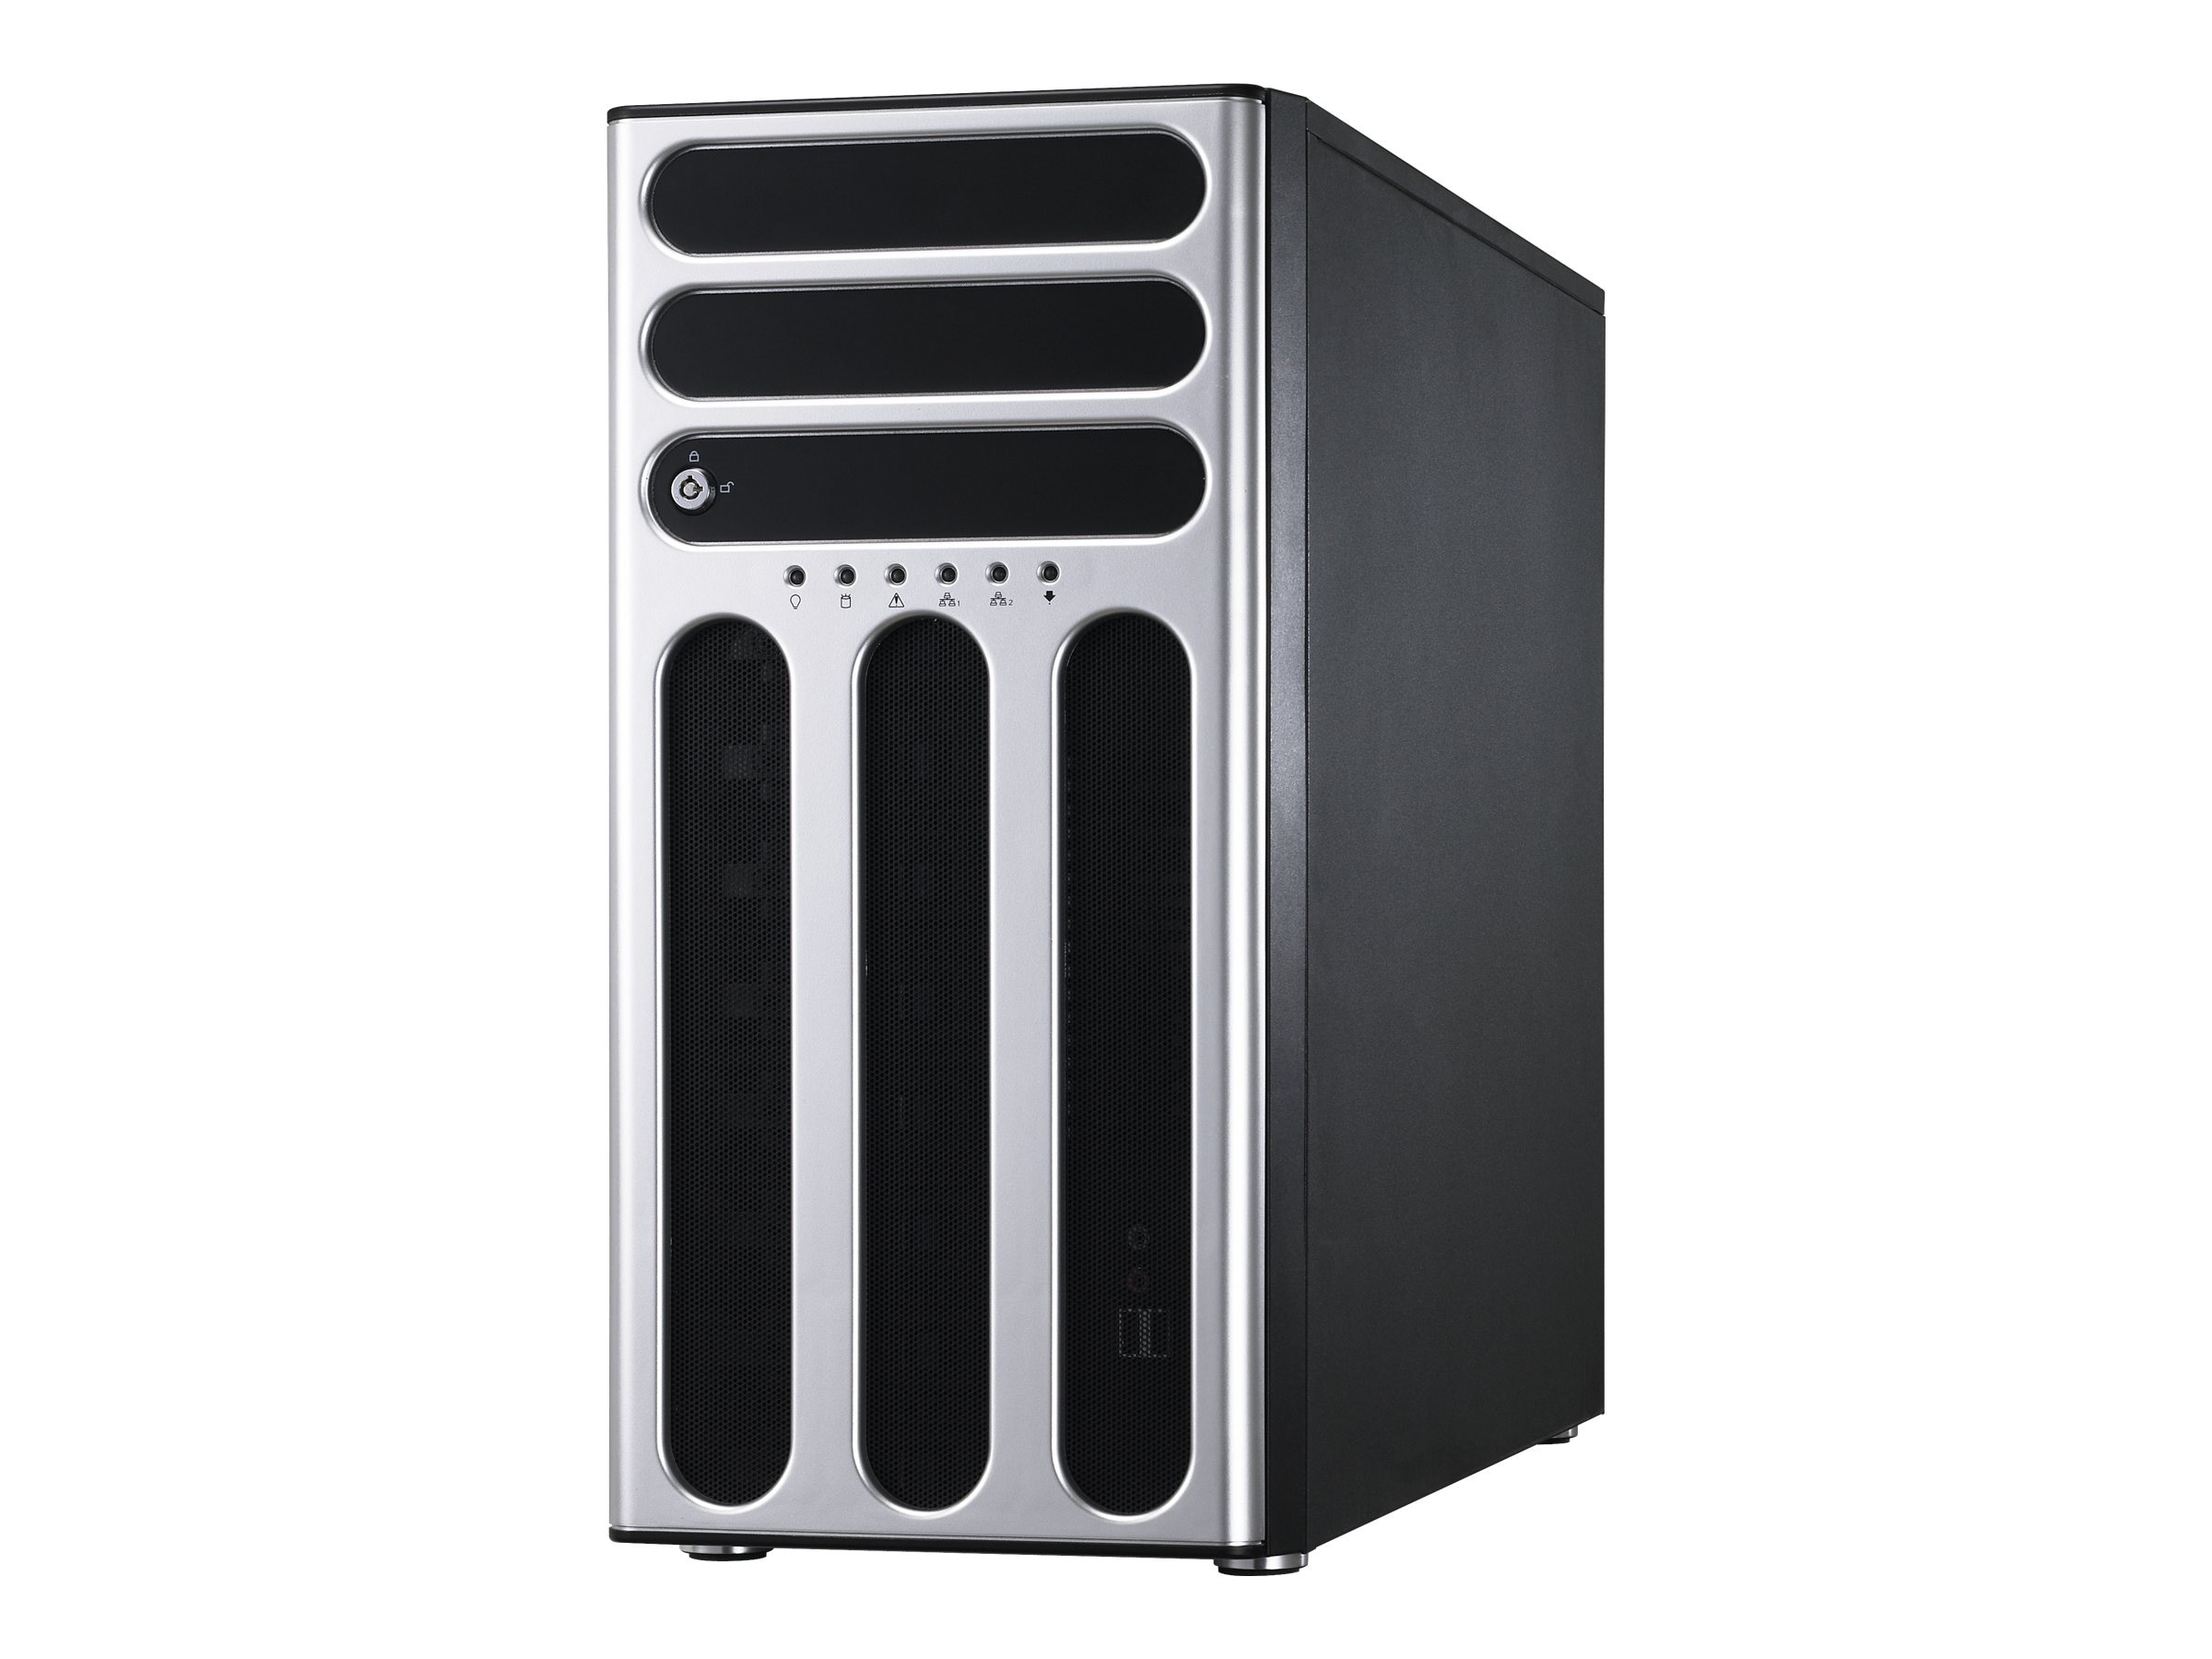 Asus TS700 Server 5U Tower (2x) Xeon E5-2600 Family Max.256GB DDR3 4x3.5 HS Bays DVDRW GNIC 500W, TS700-X7/PS4, 15022659, Servers